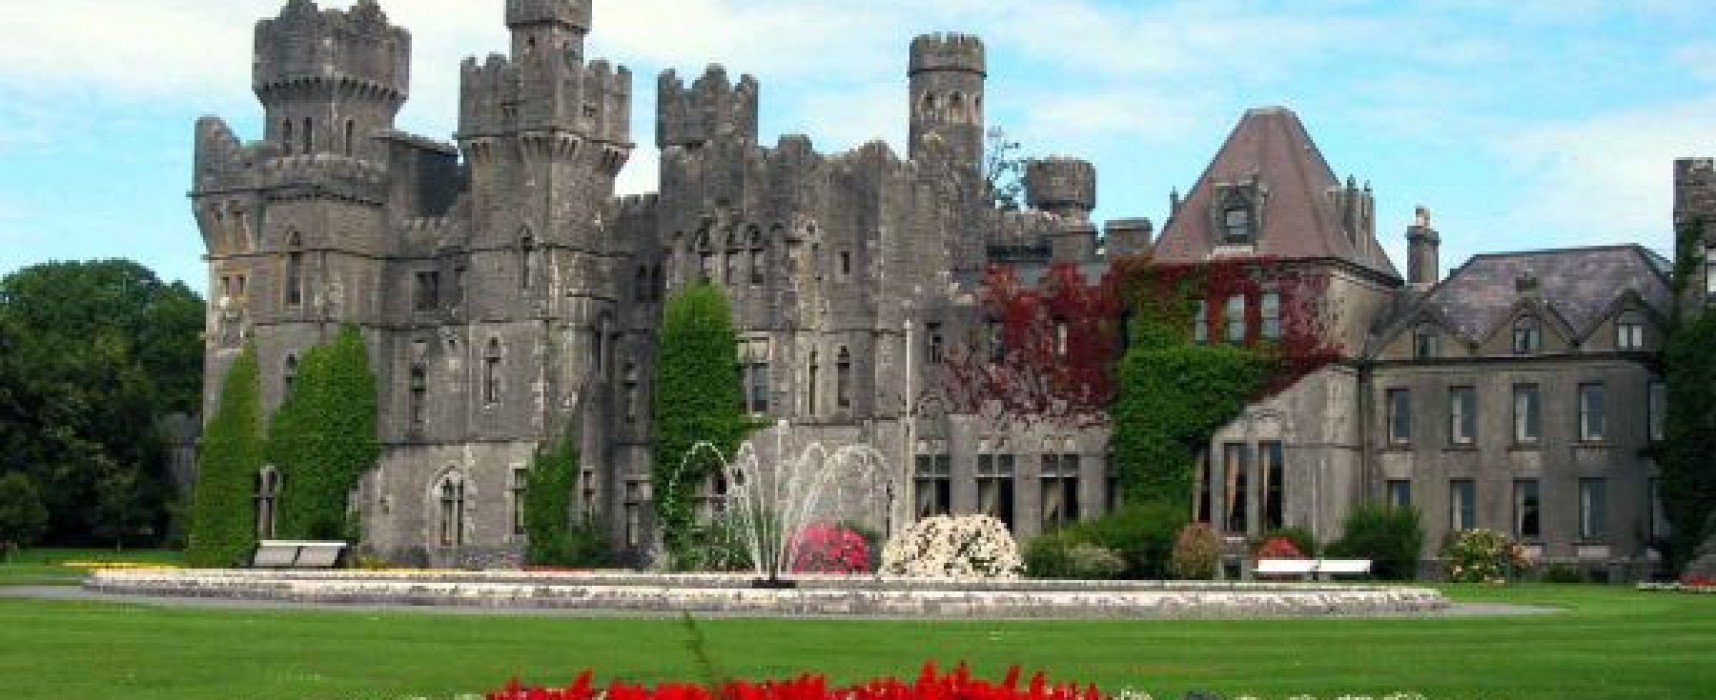 Ashford Castle An Antique Castle In Ireland